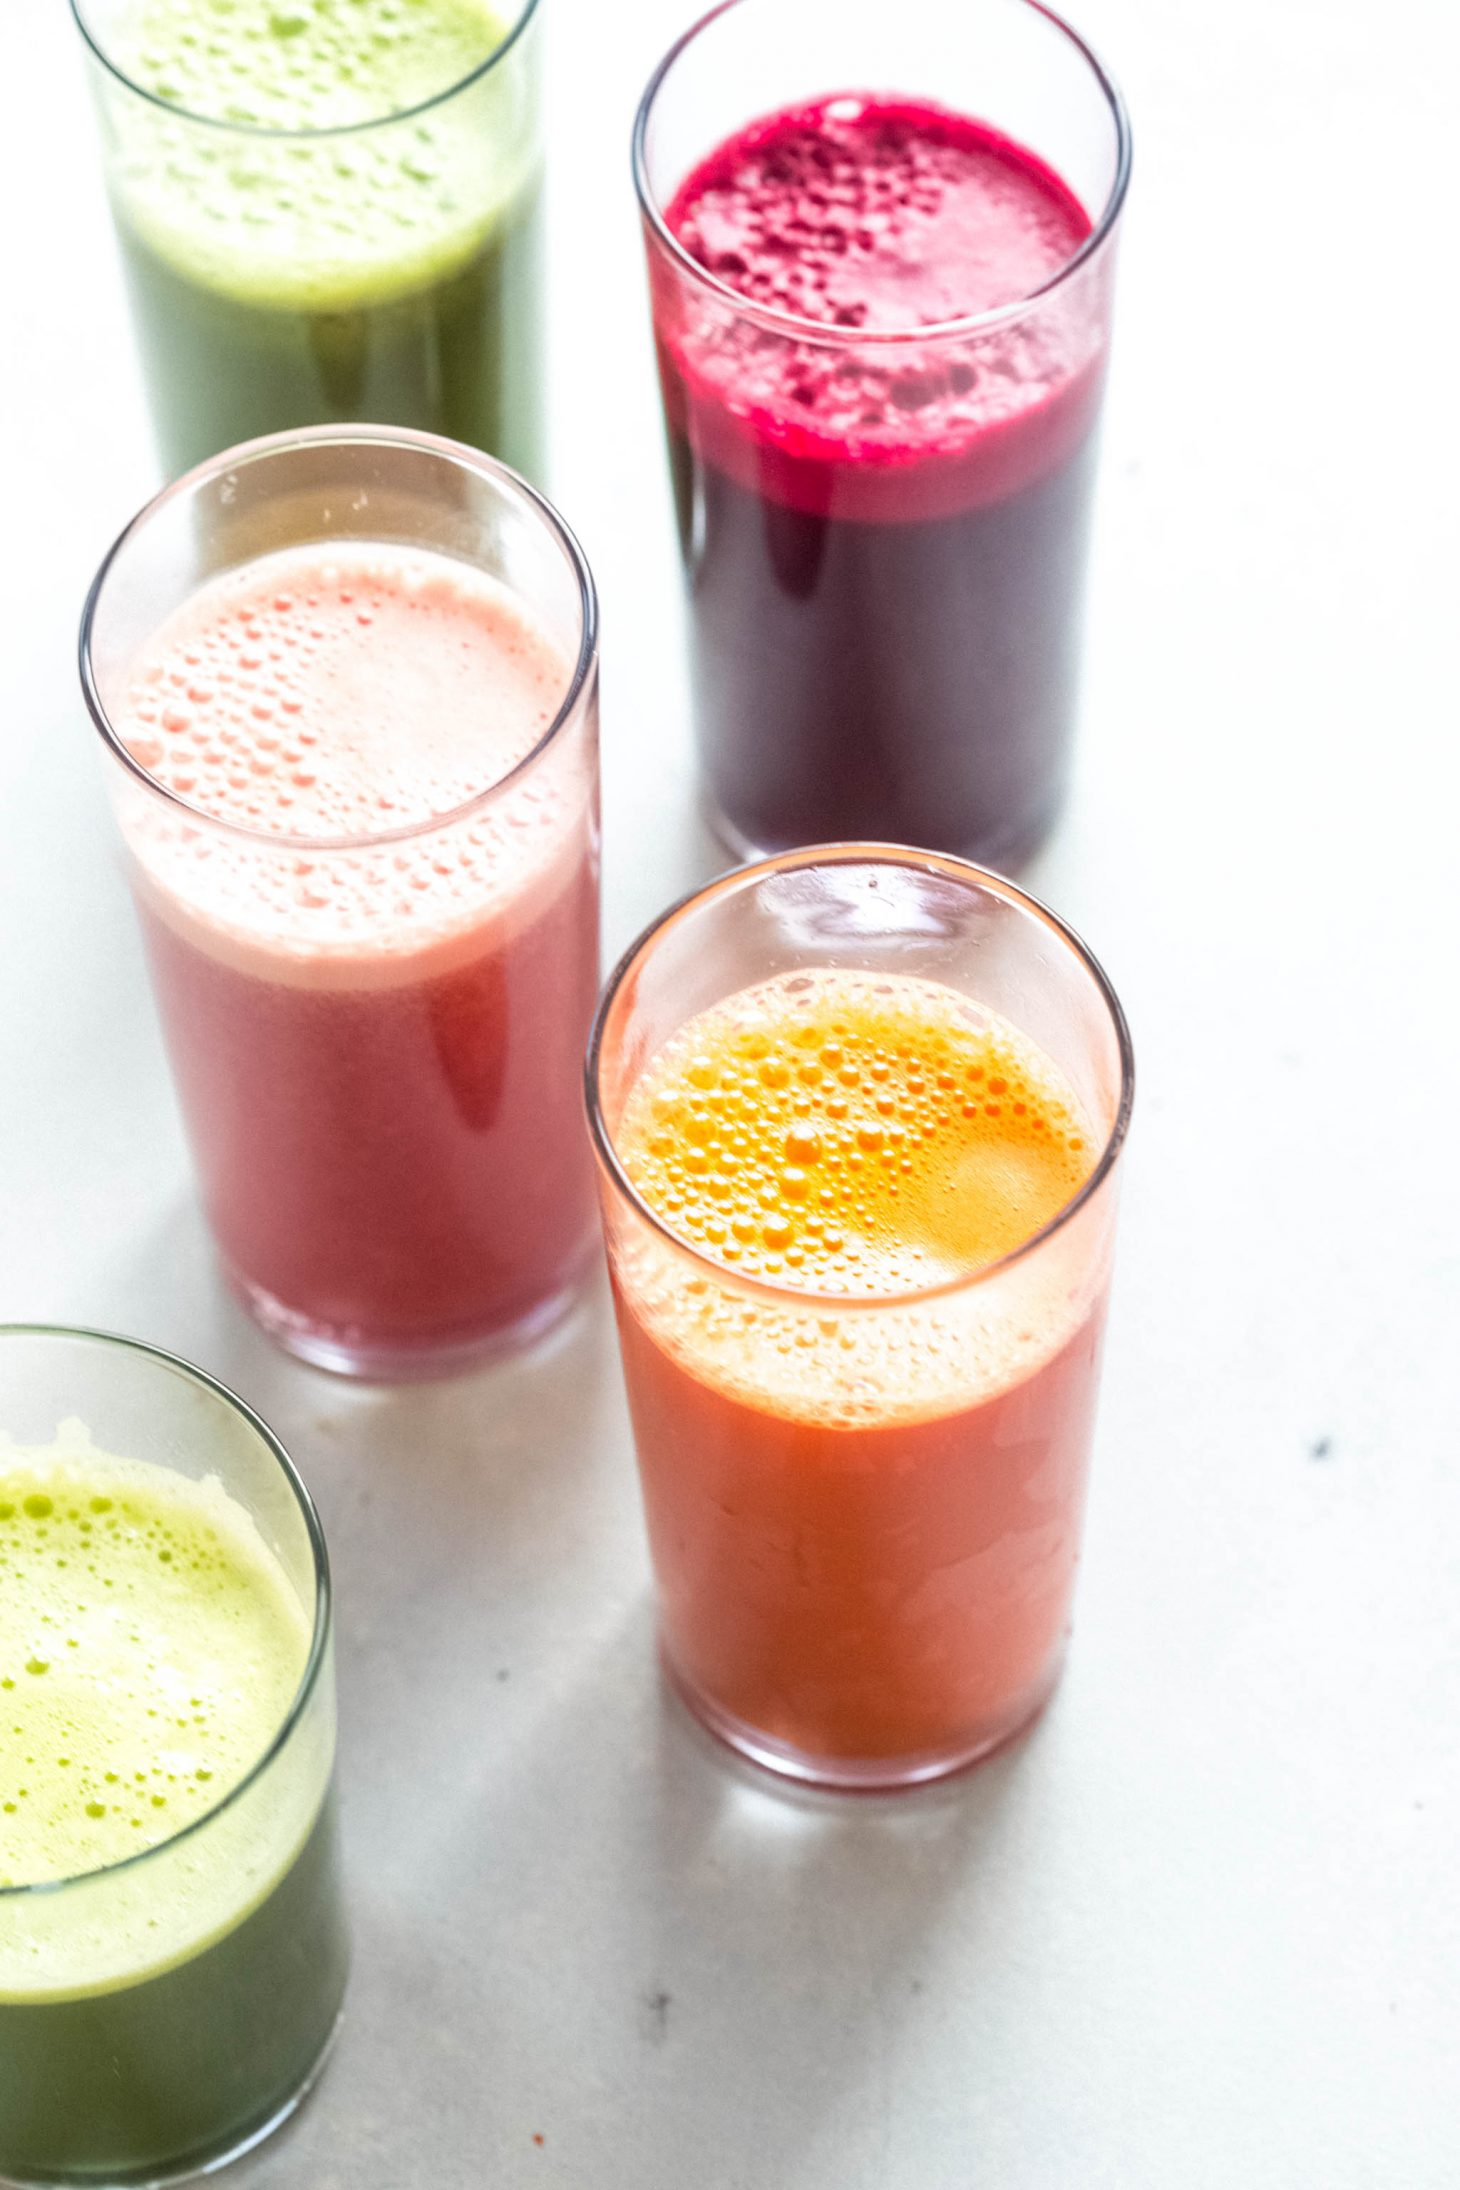 Going For Juice Detox For Weight Loss? Here's All You Need To Know To About It